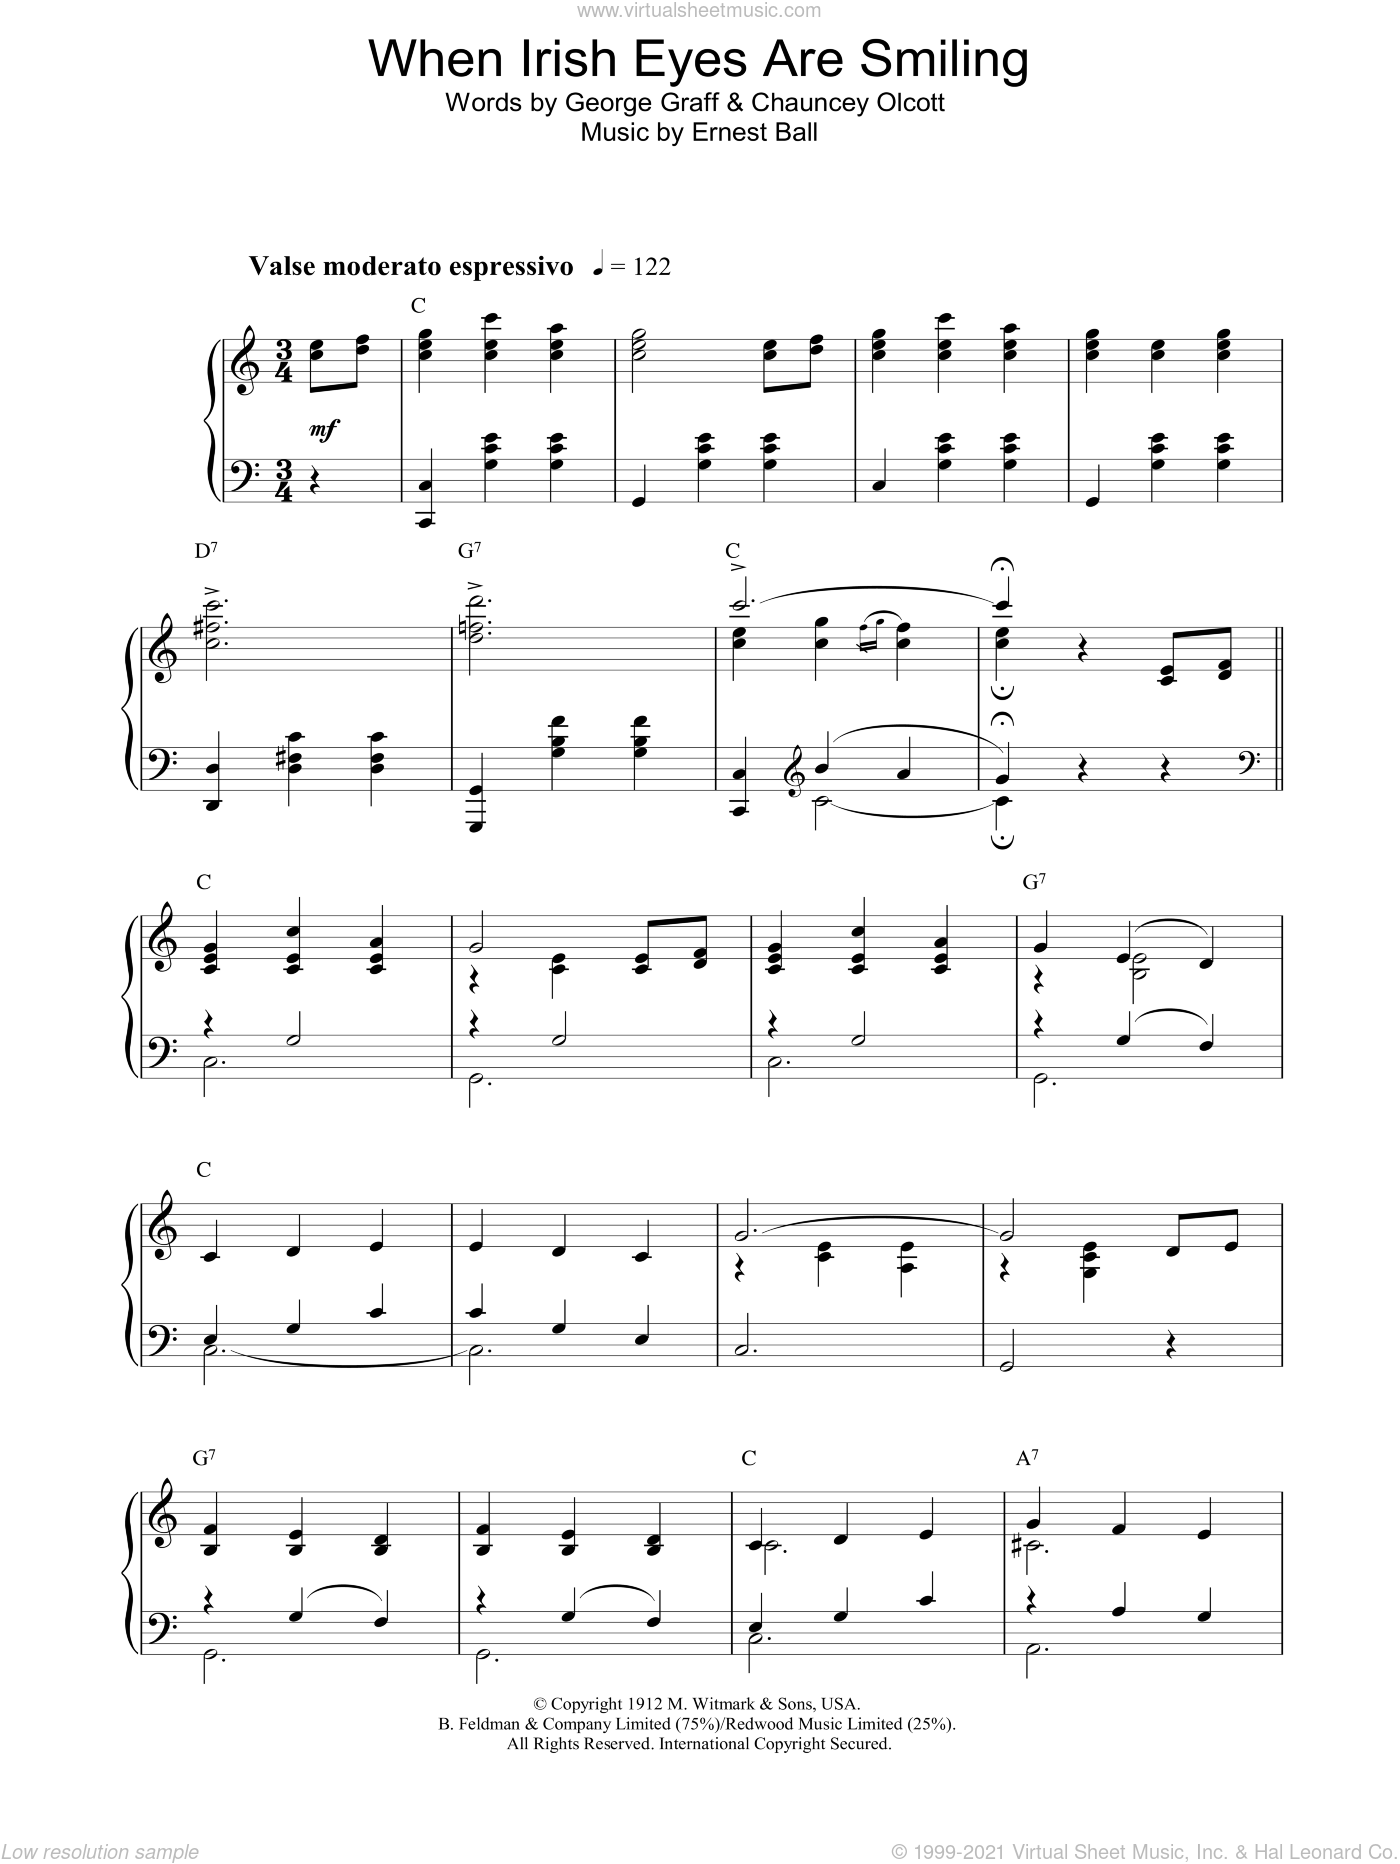 When Irish Eyes Are Smiling sheet music for piano solo by George Graff Jr.